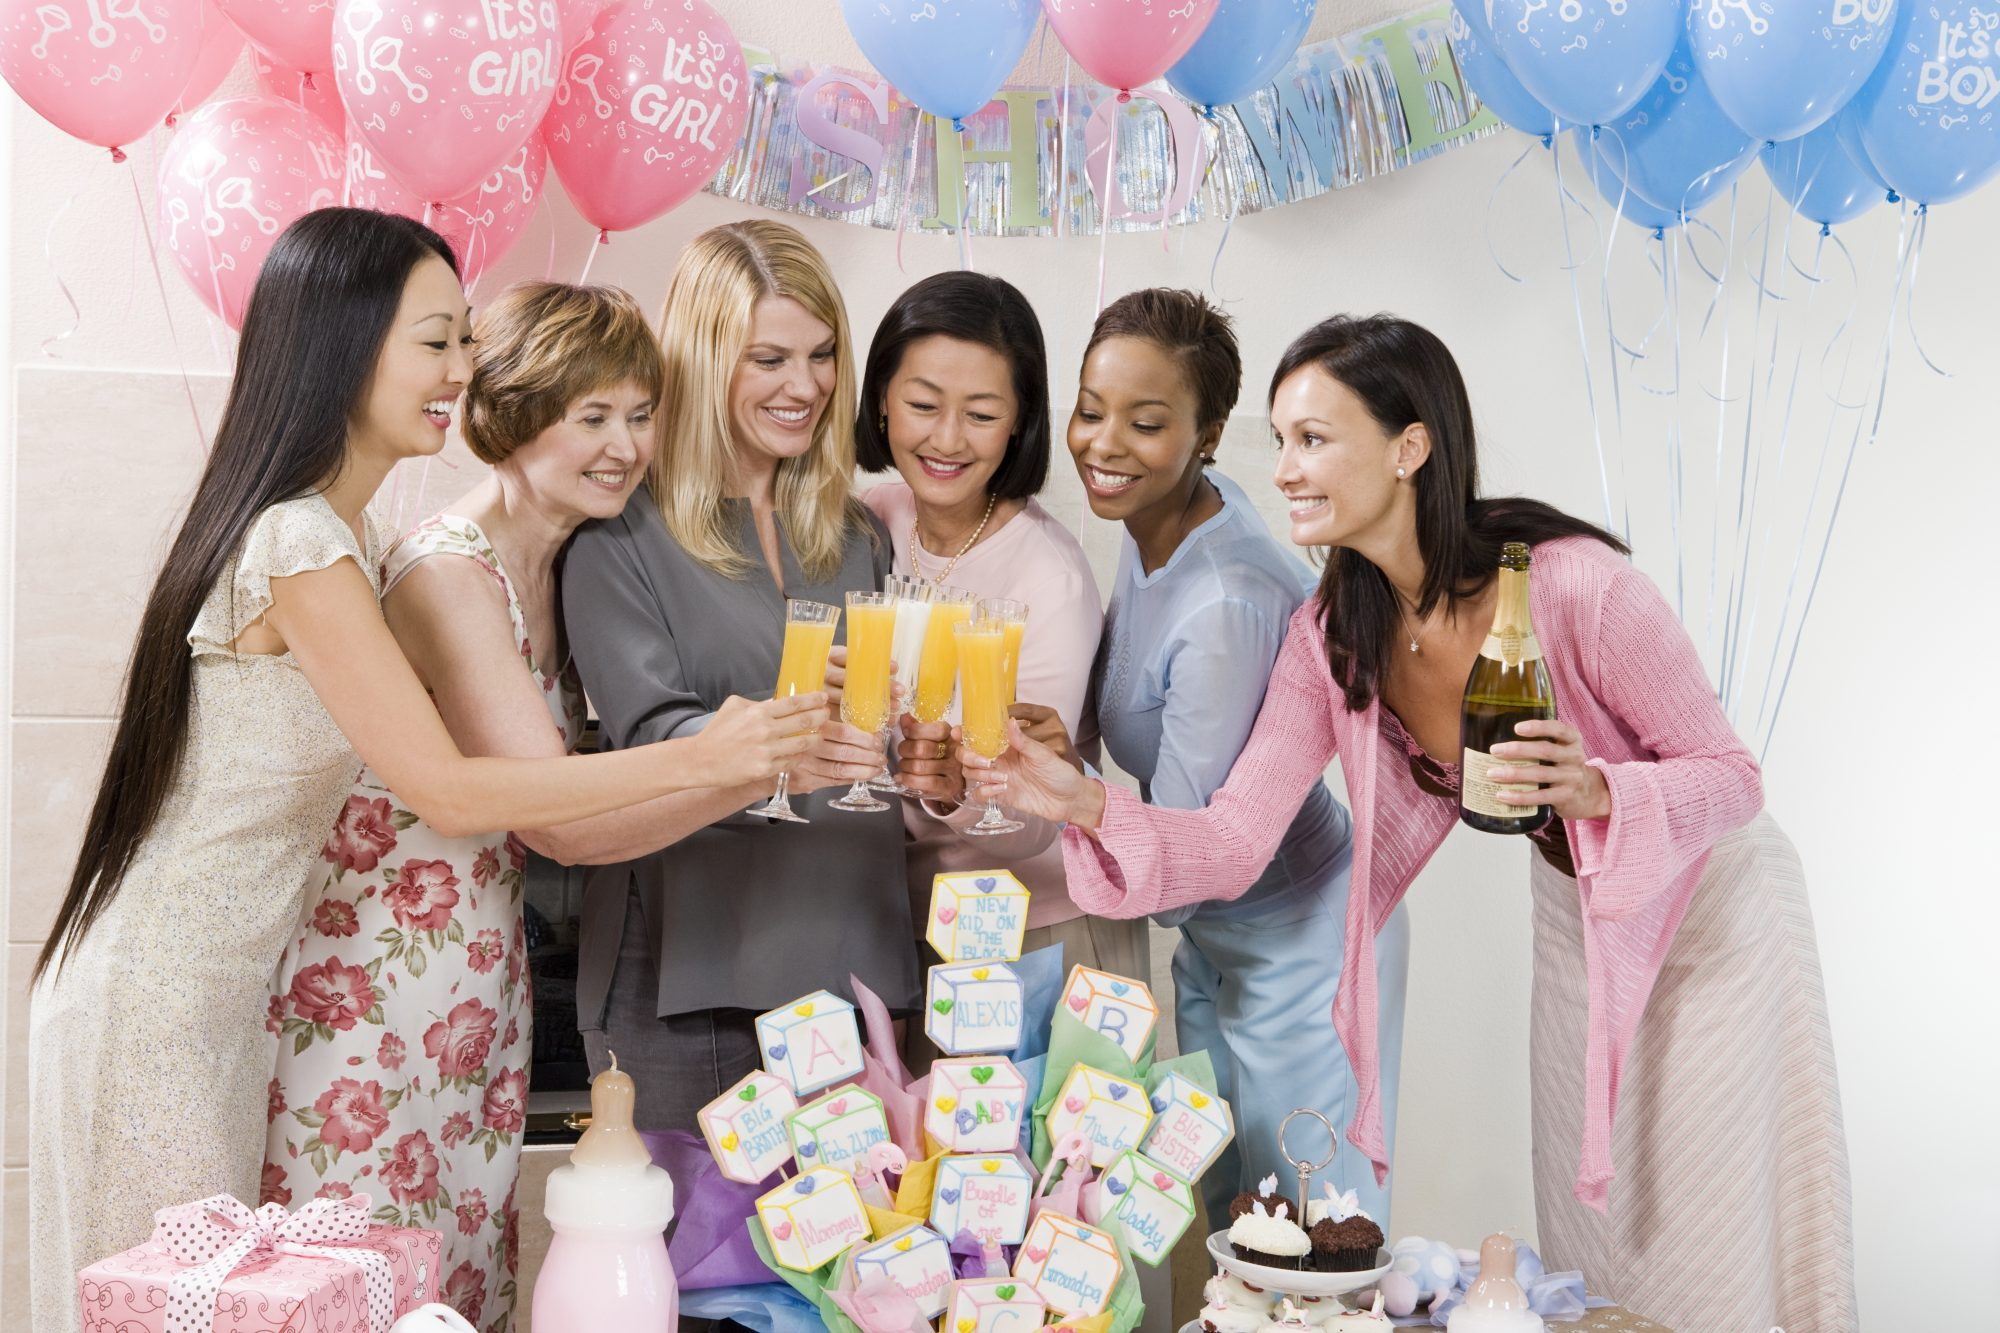 The Baby Shower Etiquette Rule Everyone Should Know